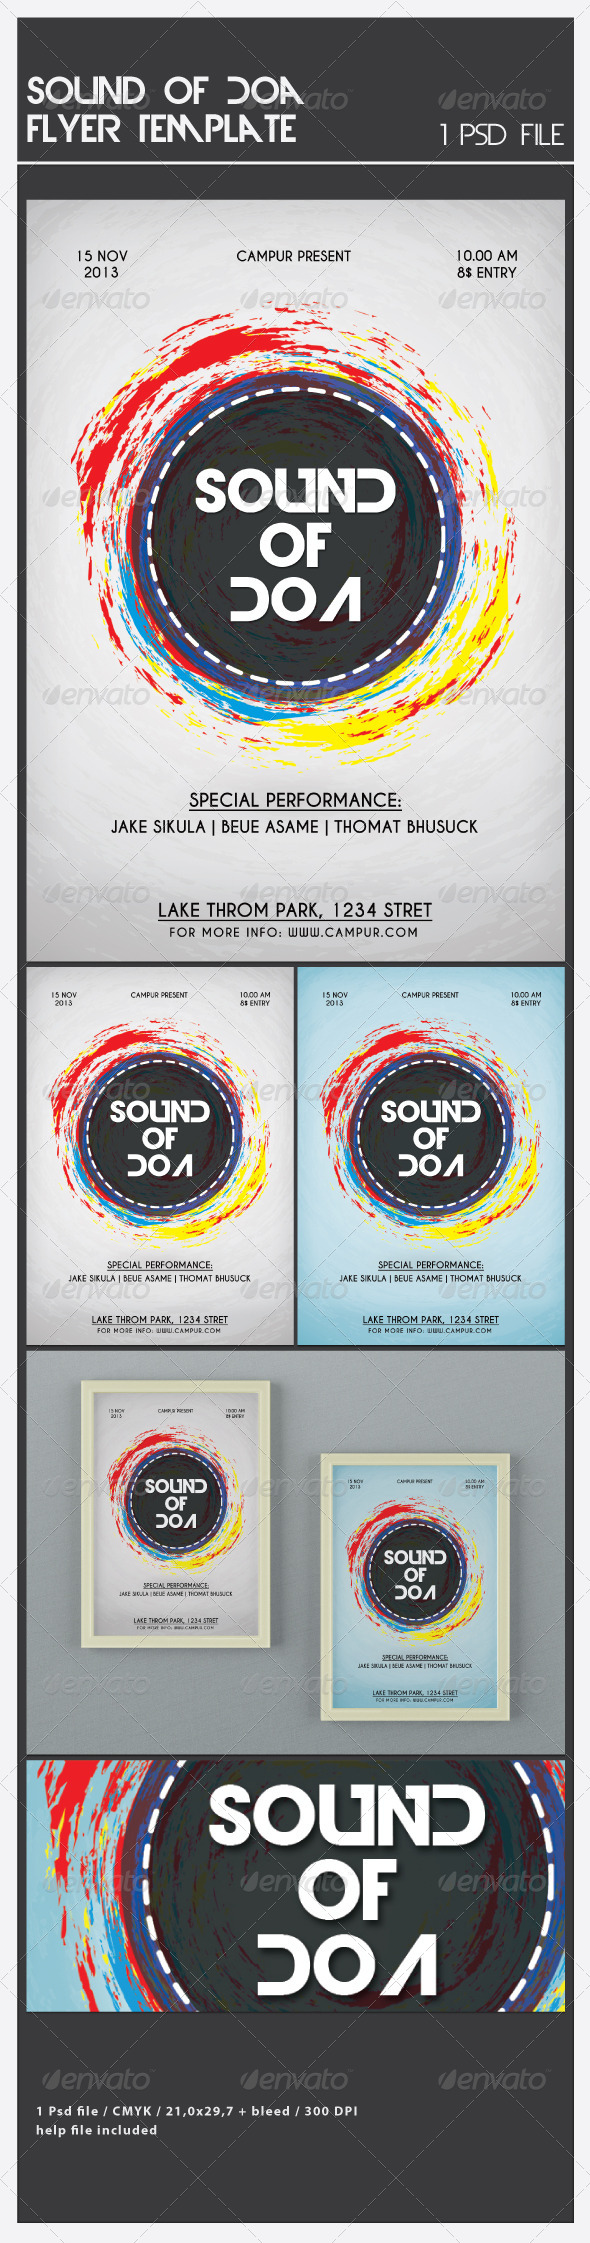 GraphicRiver Sound of Doa Flyer Template 6493567